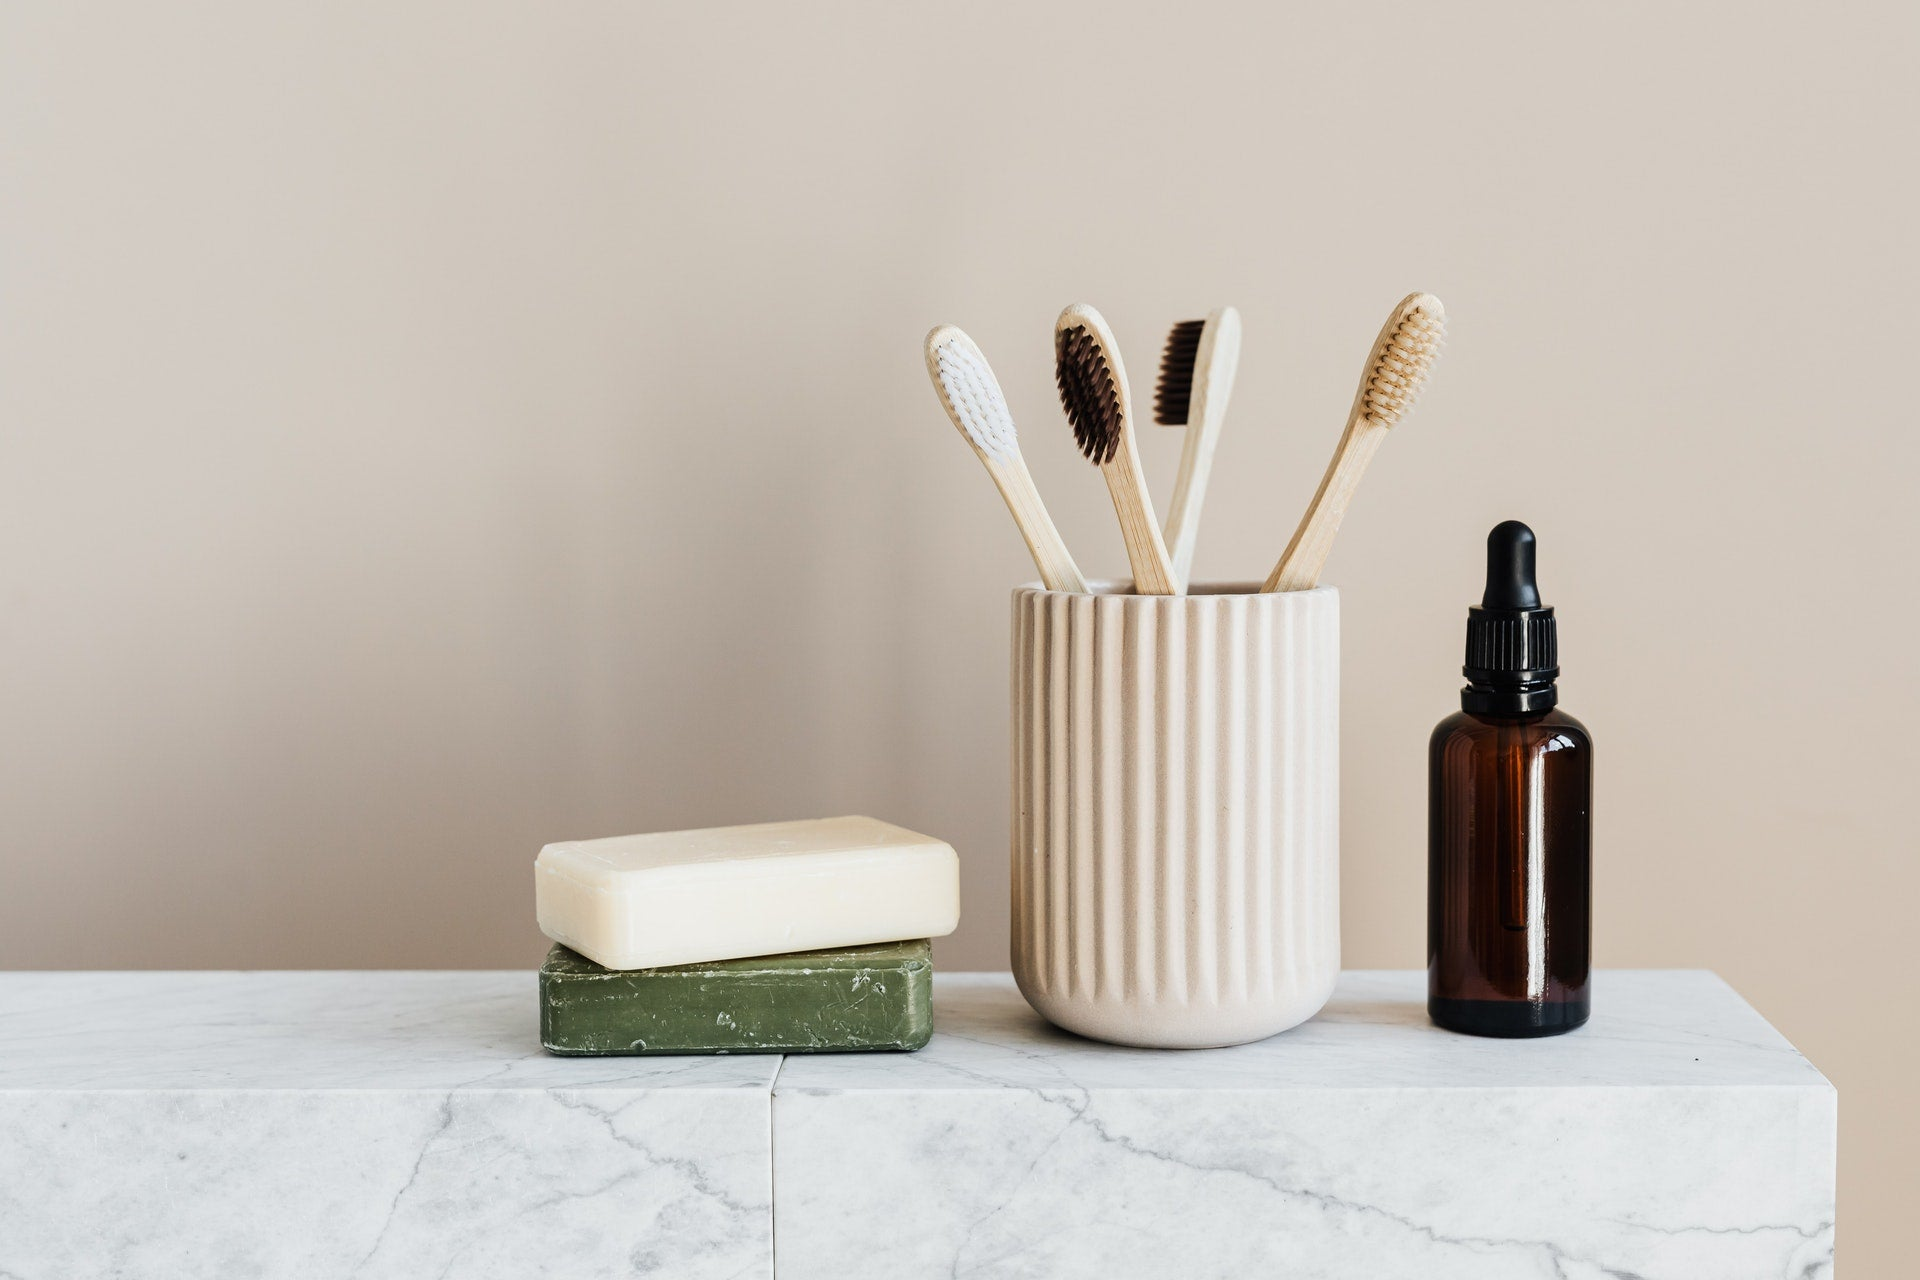 Achieve Sustainable Beauty in 2021 with 5 Simple Eco-Friendly Swaps